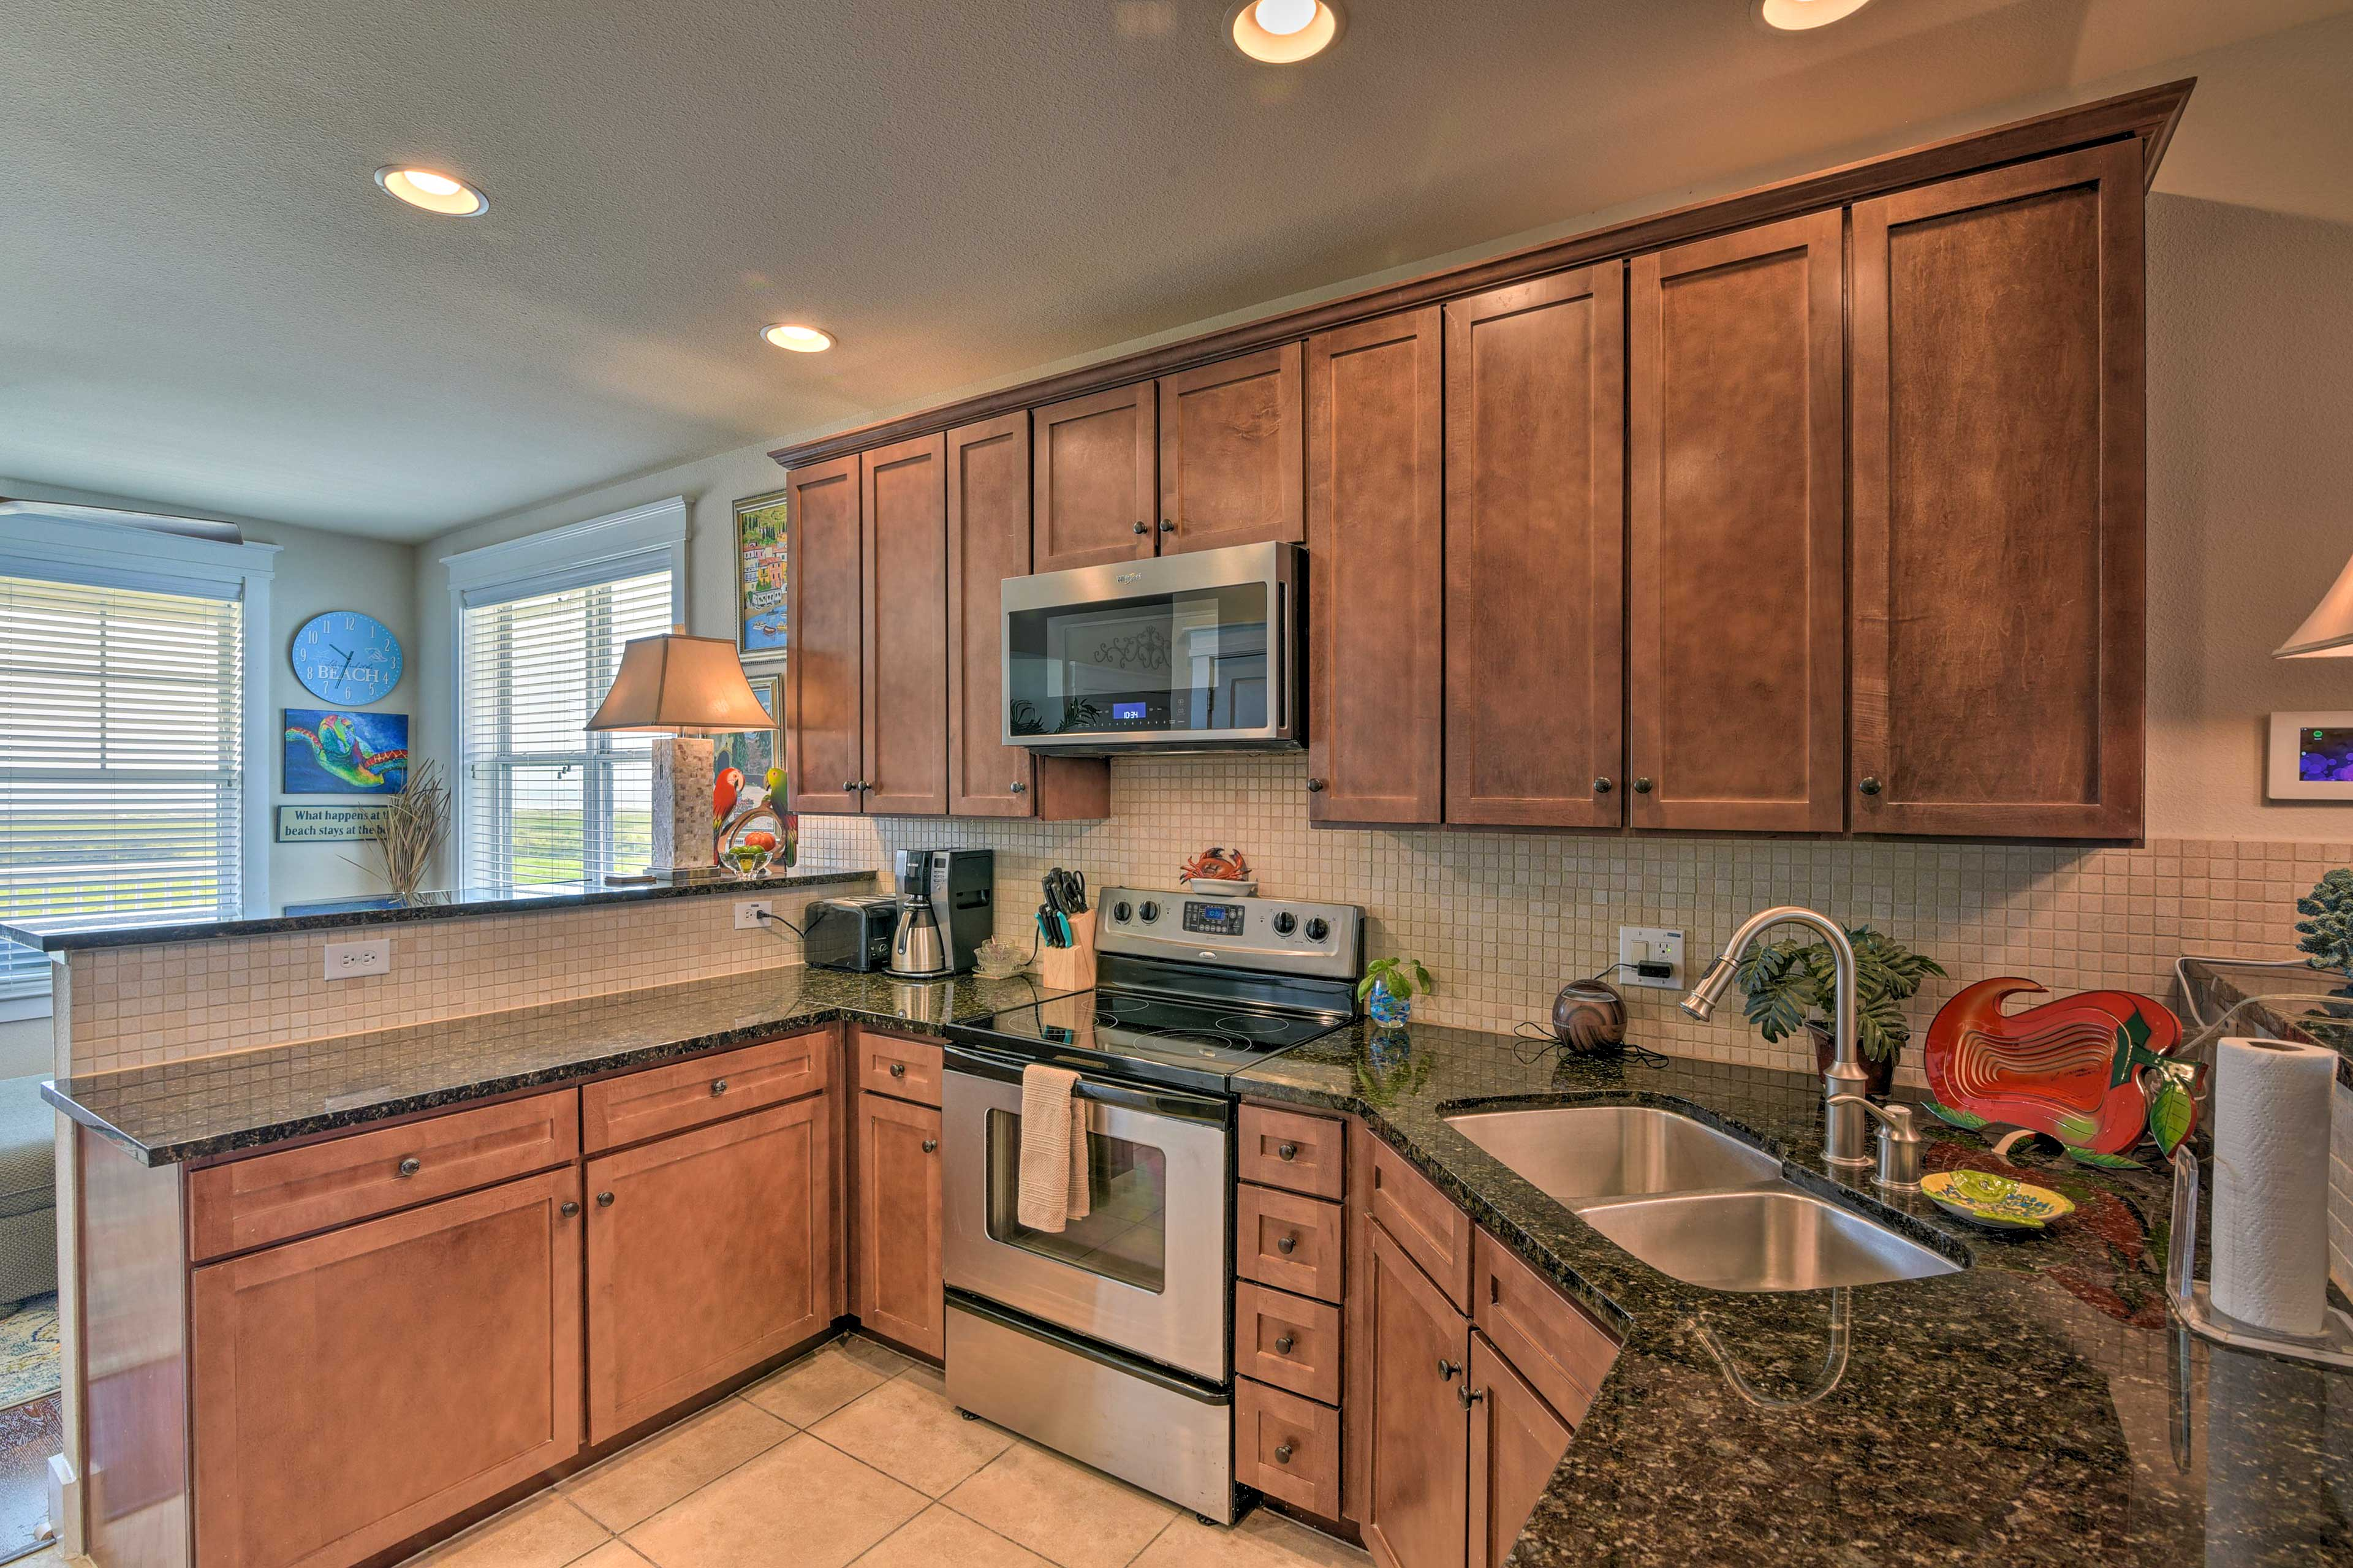 The fully equipped kitchen includes everything you'll need to prepare dinner.